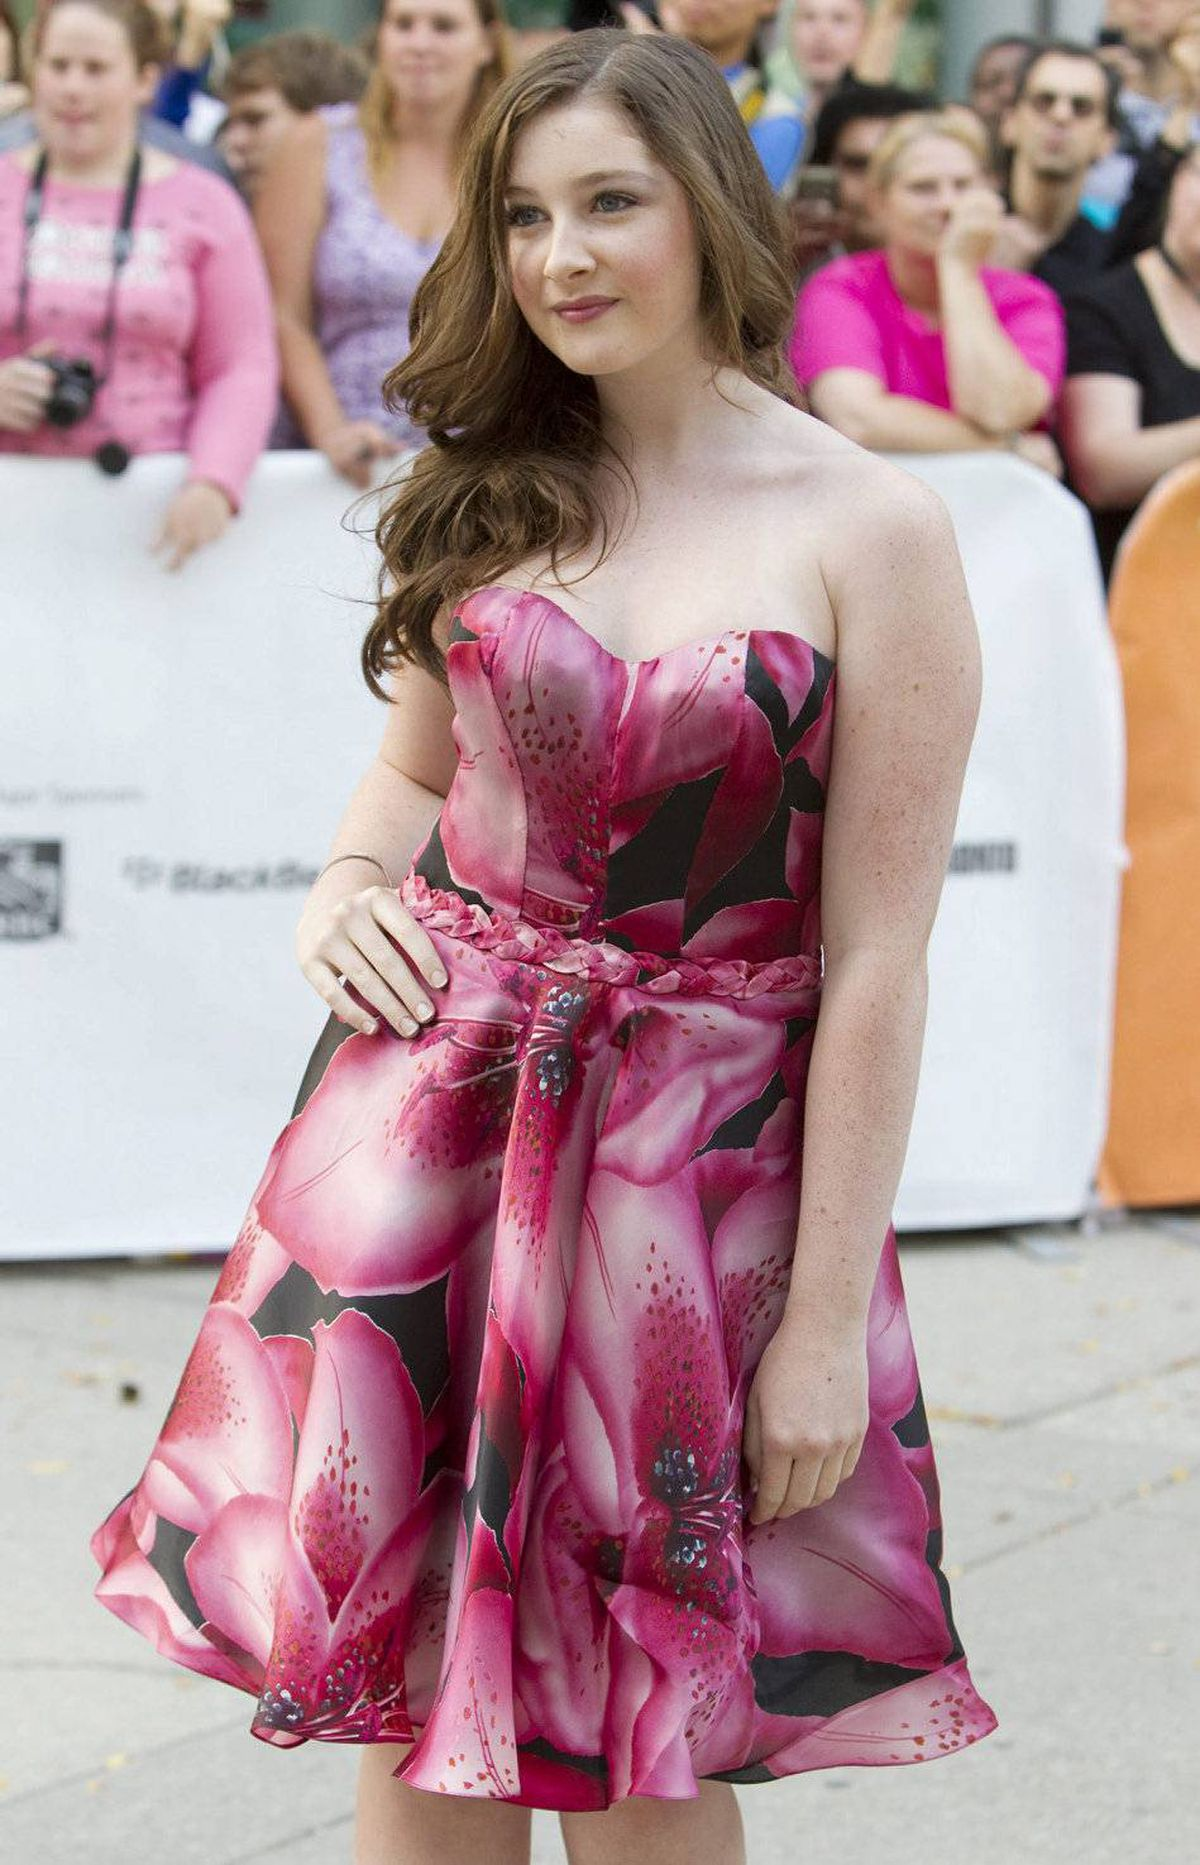 """Actress Marissa O'Donnell poses at the gala for the film """"Peace, Love and Misunderstanding"""" during the Toronto International Film Festival Tuesday, September 13, 2011."""